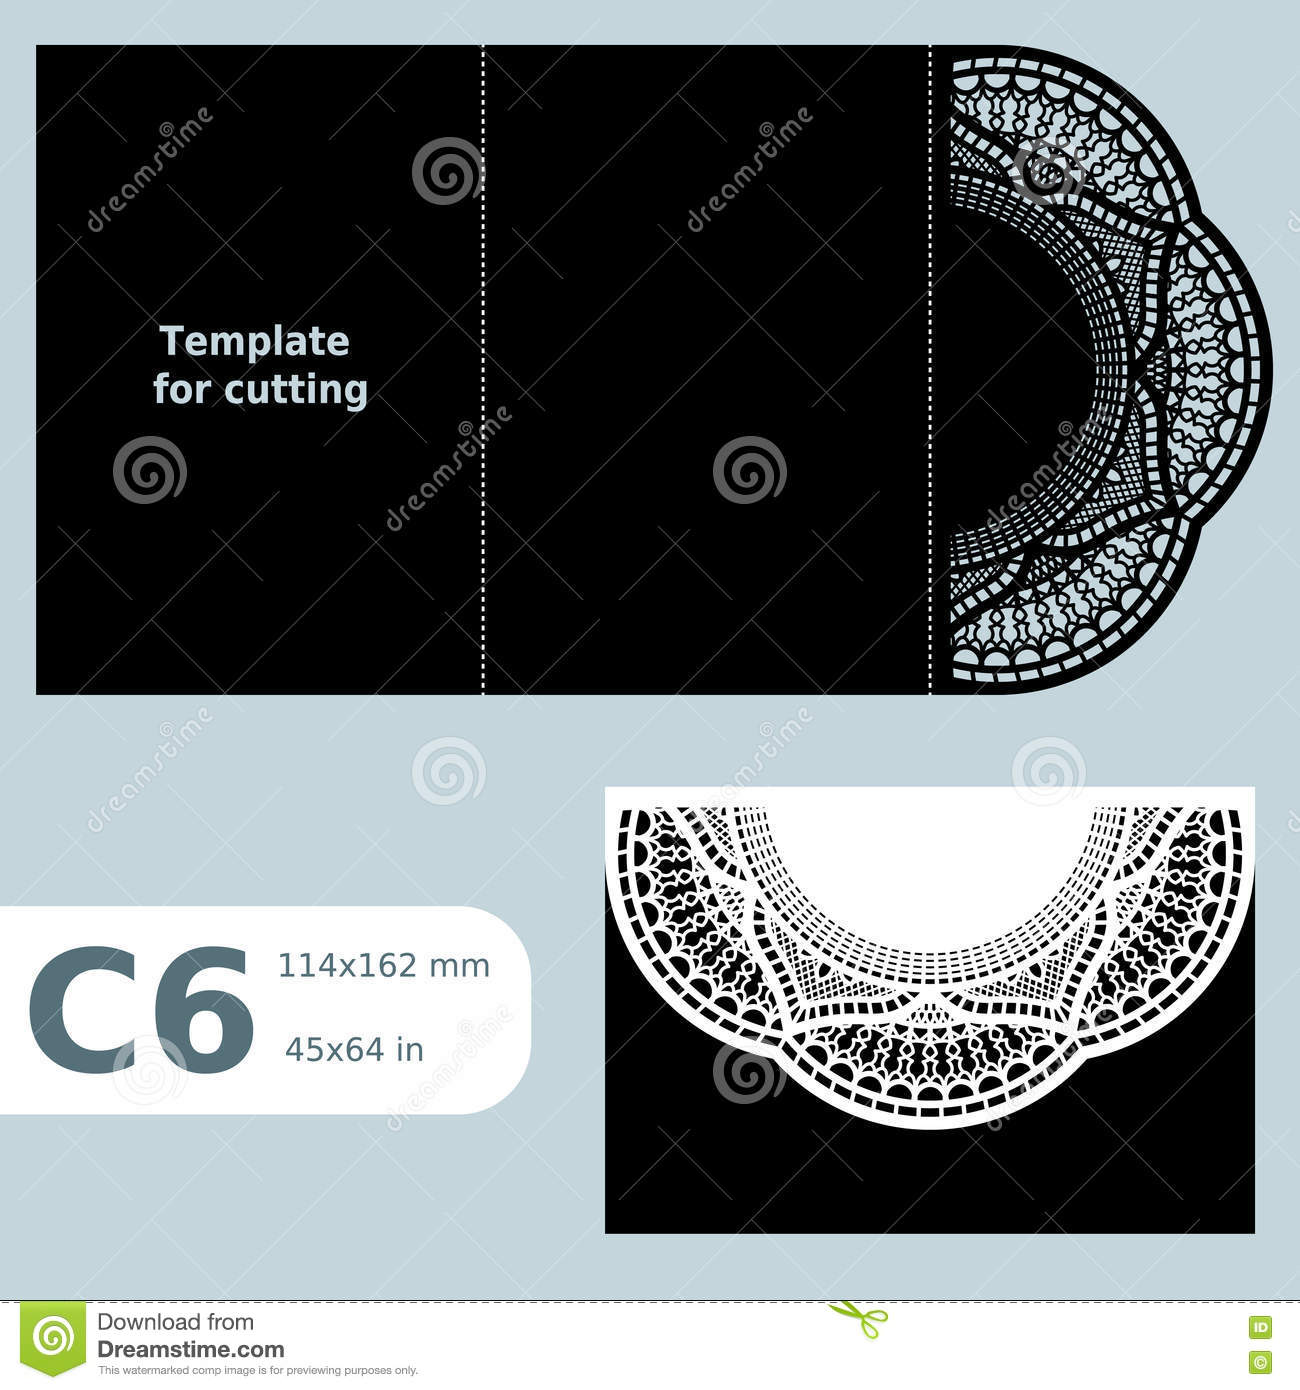 C6 Paper Openwork Greeting Card Template For Cutting Lace